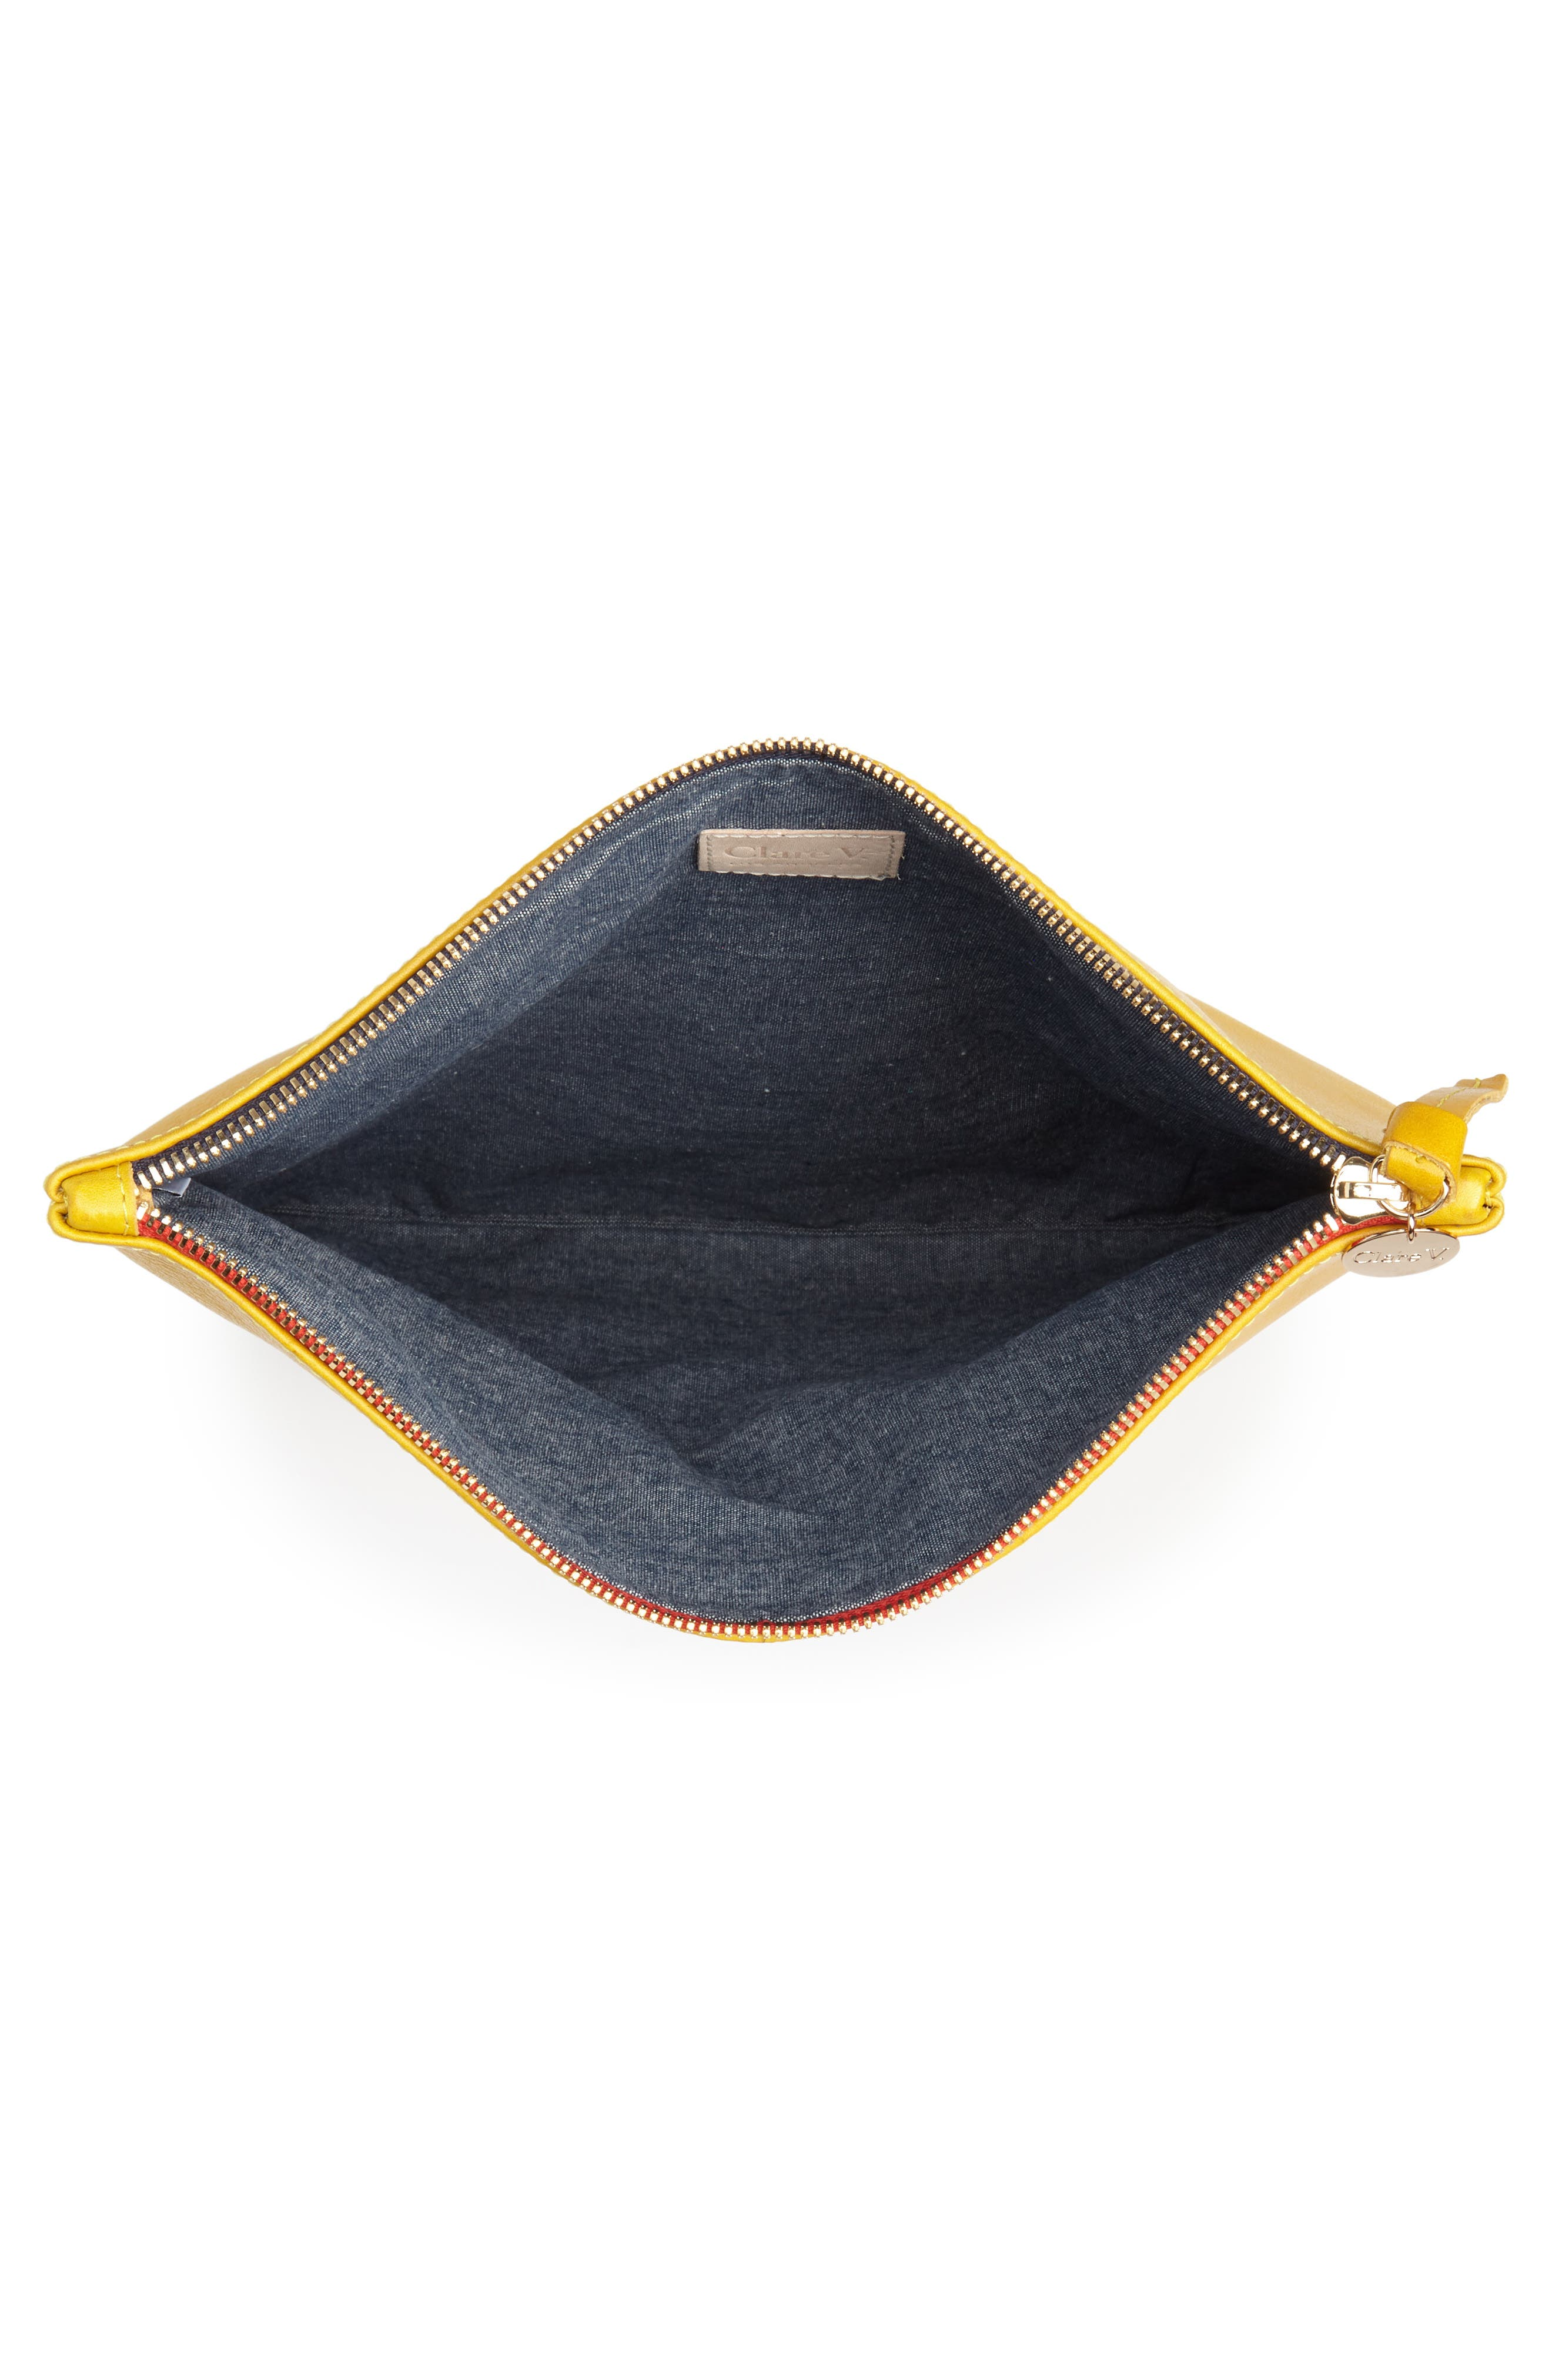 Leather Foldover Clutch,                             Alternate thumbnail 4, color,                             700